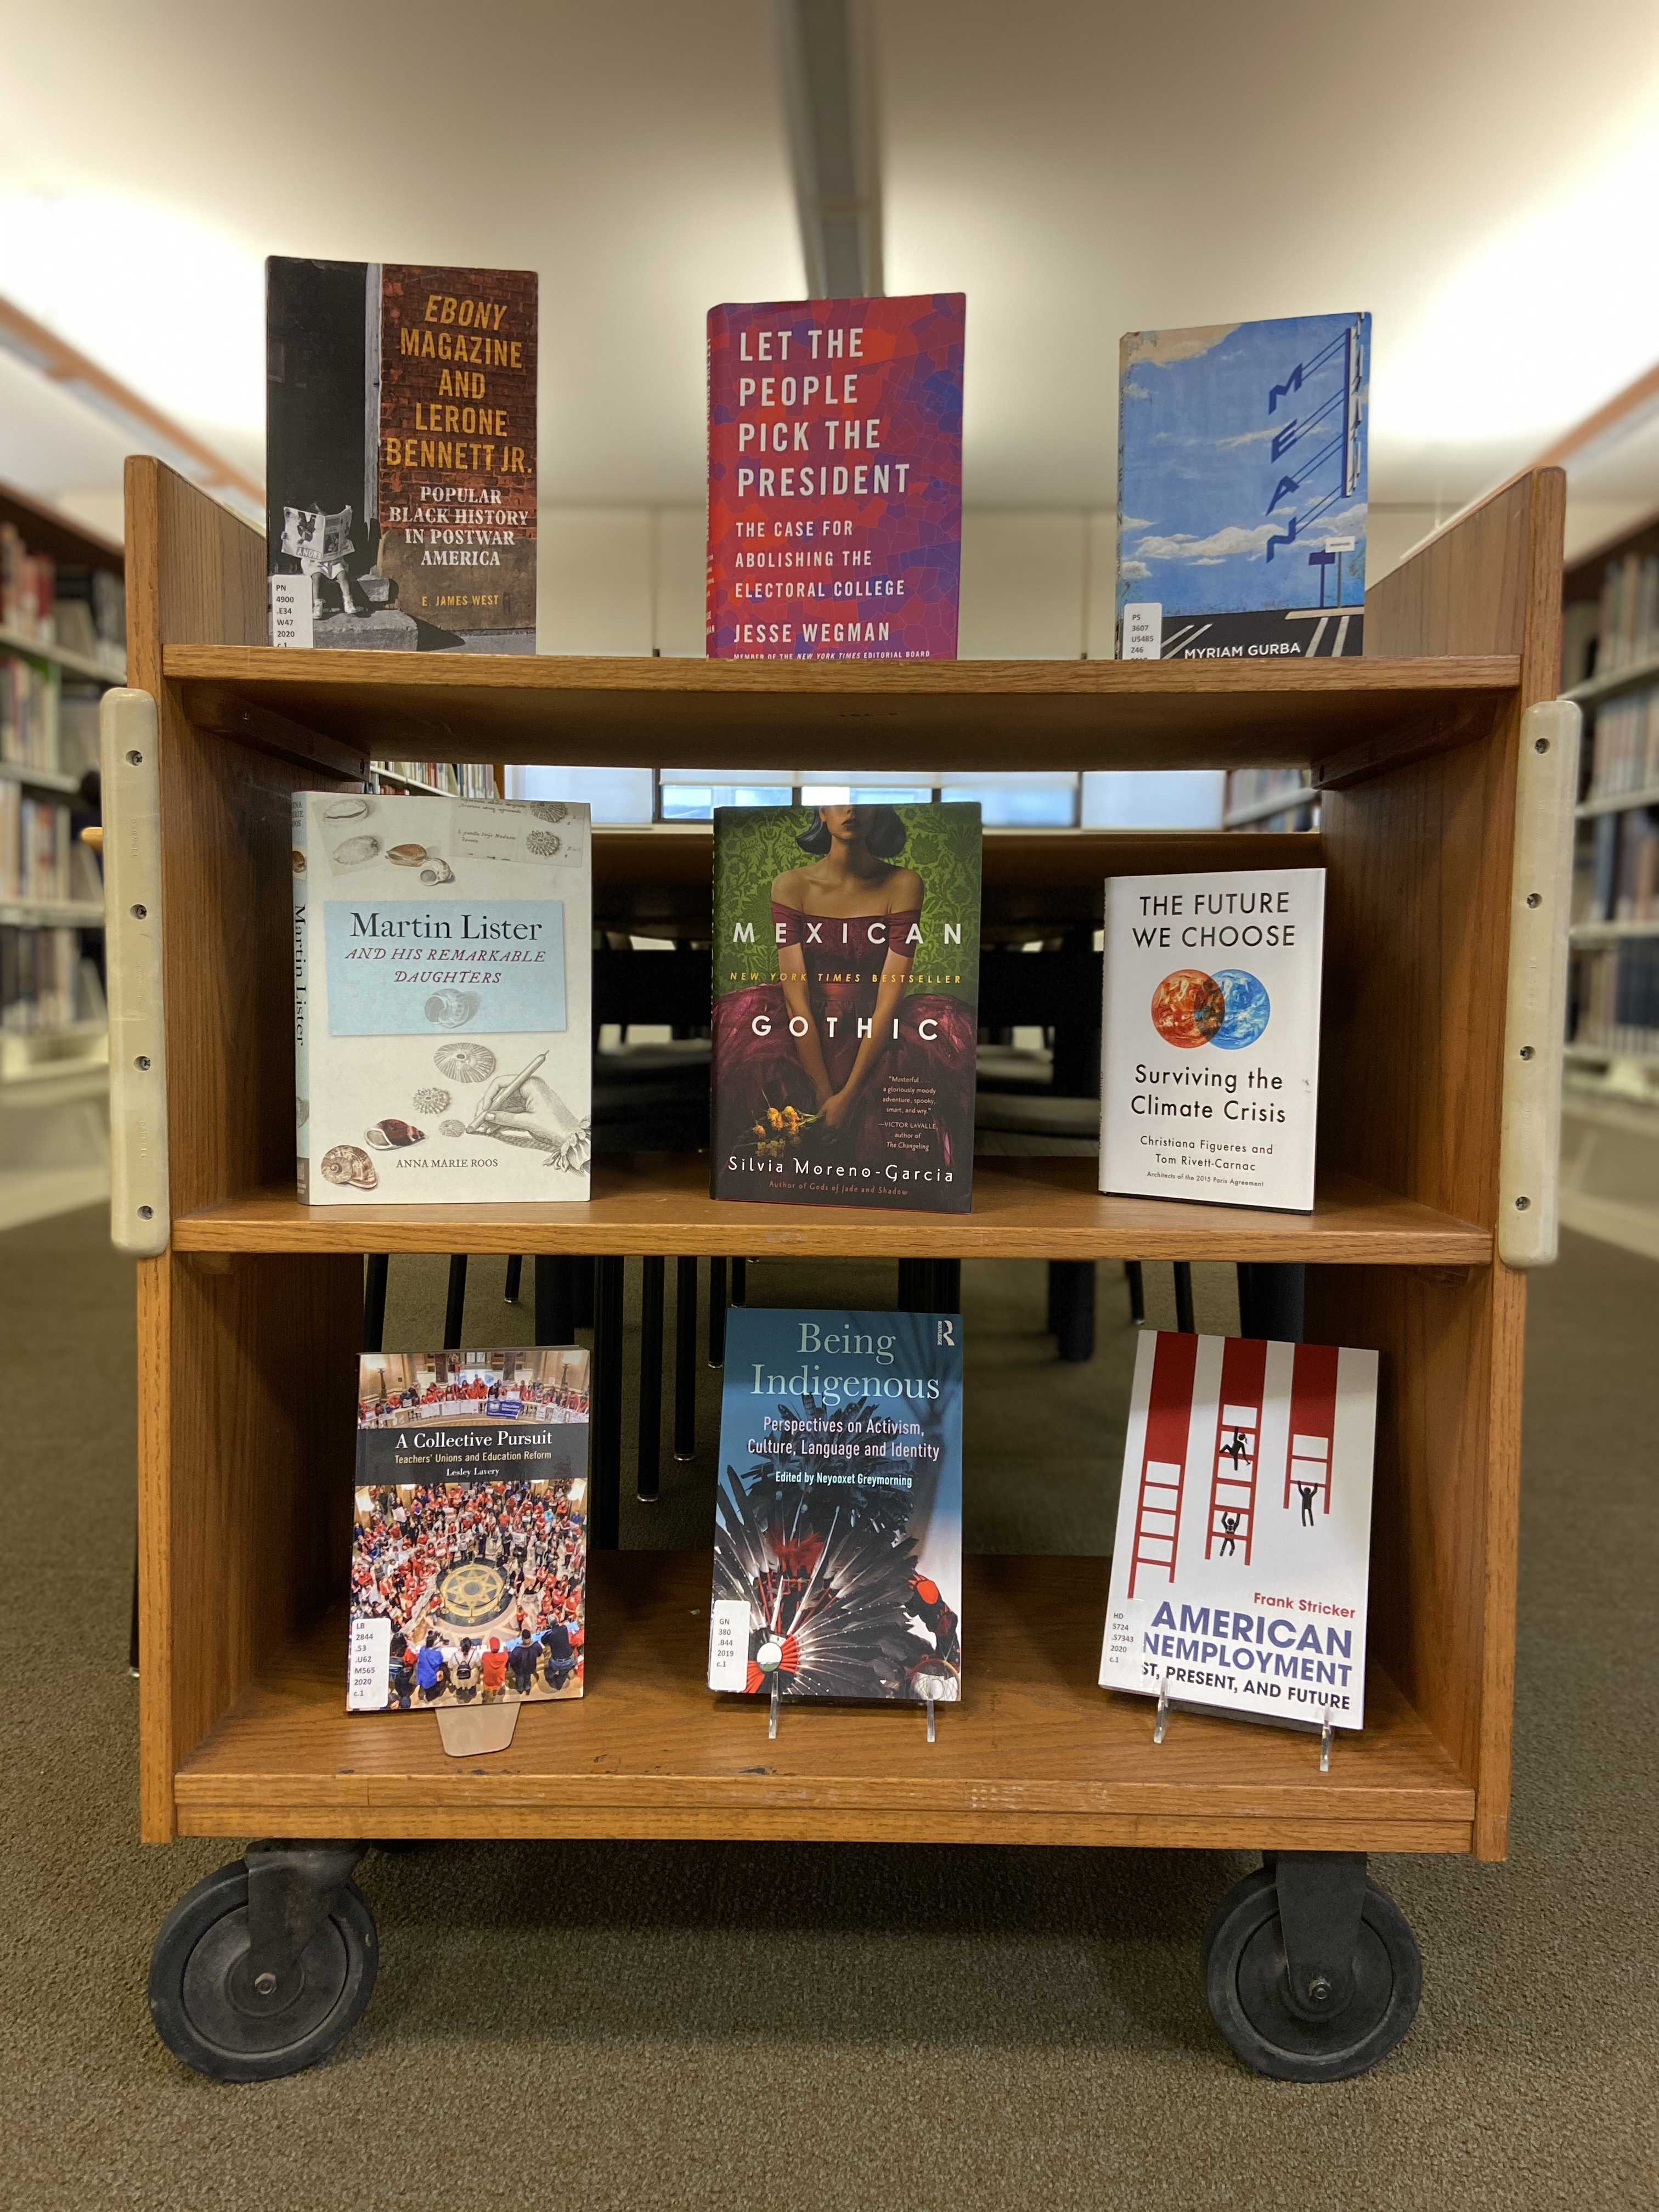 Photo of a library cart with the books listed below on display.